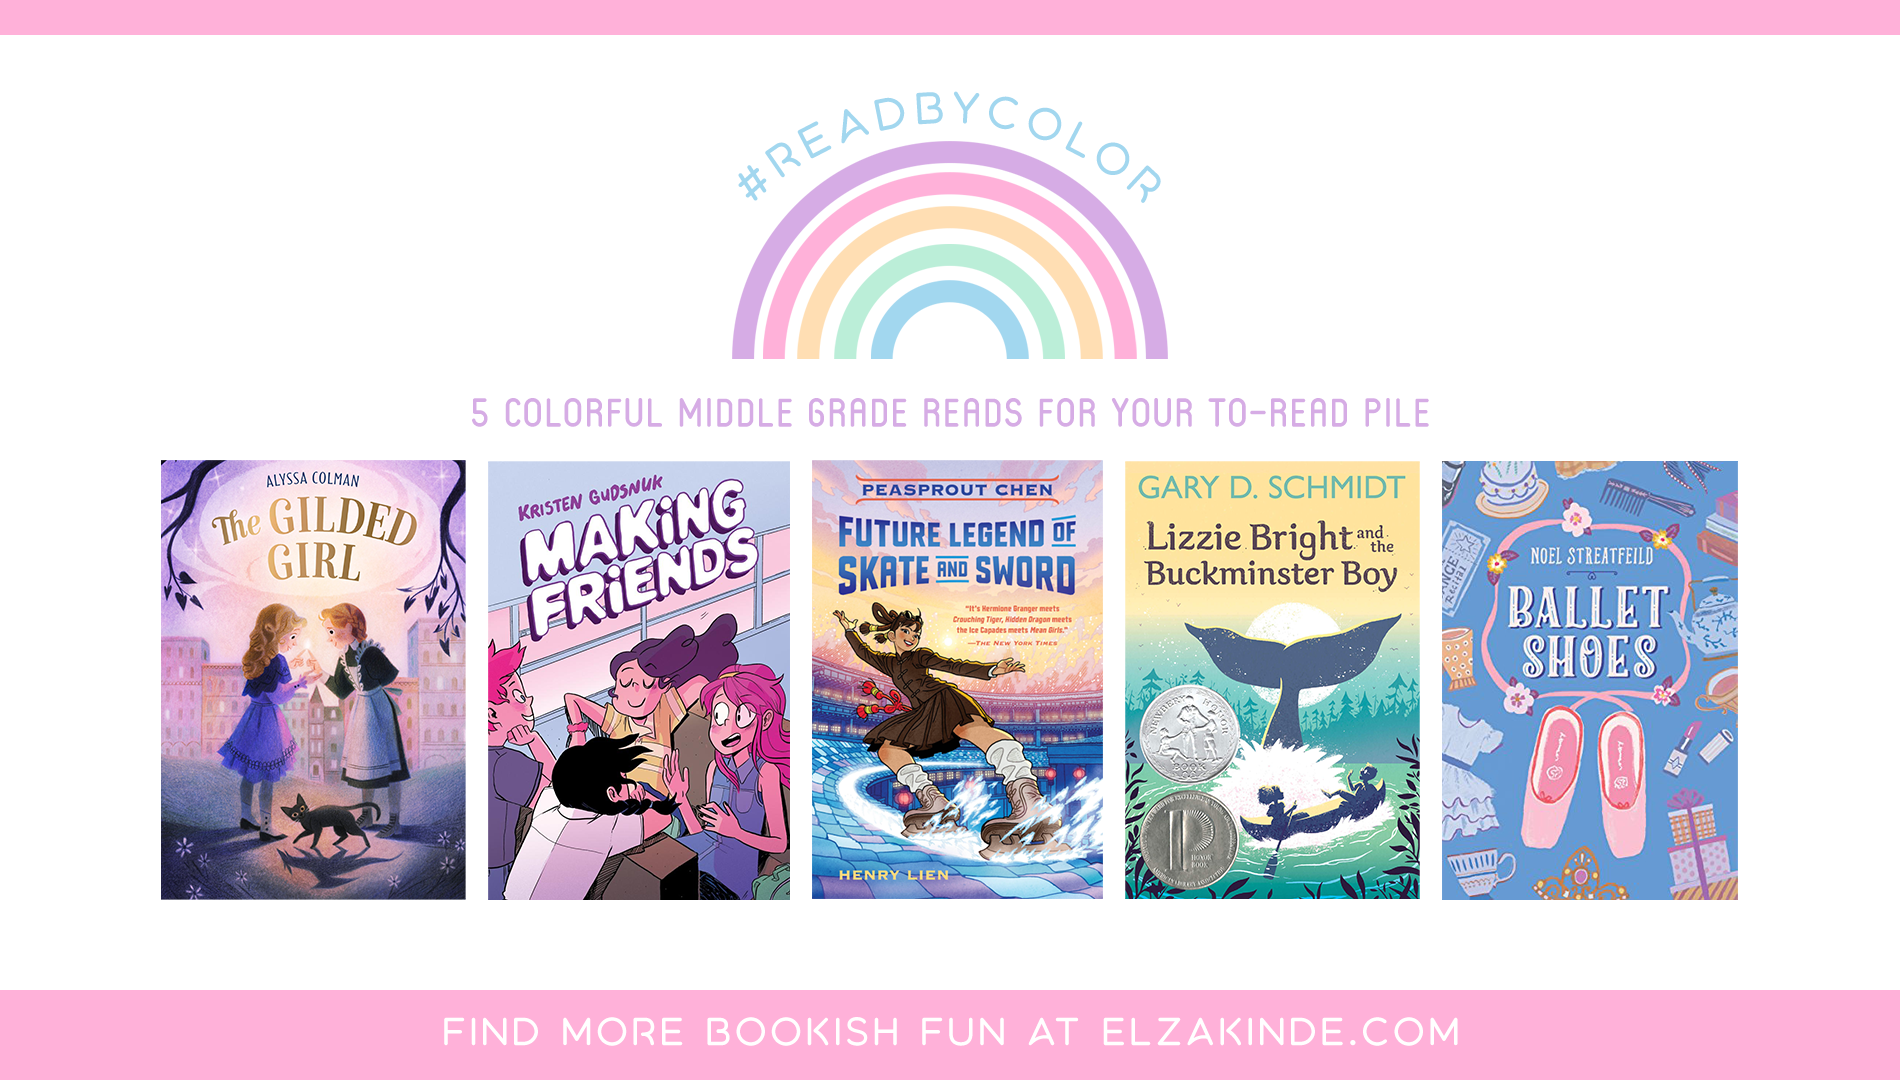 #ReadByColor: 5 Colorful Middle Grade Reads for Your To-Read Pile | features the book covers of THE GILDED GIRL by Alyssa Colman; MAKING FRIENDS by Kristen Gudsnuk; PEASPROUT CHEN: FUTURE LEGEND OF SKATE AND SWORD by Henry Lien; LIZZIE BRIGHT AND THE BUCKMINSTER BOY by Gary D. Schmidt; and BALLET SHOES by Noel Streatfeild